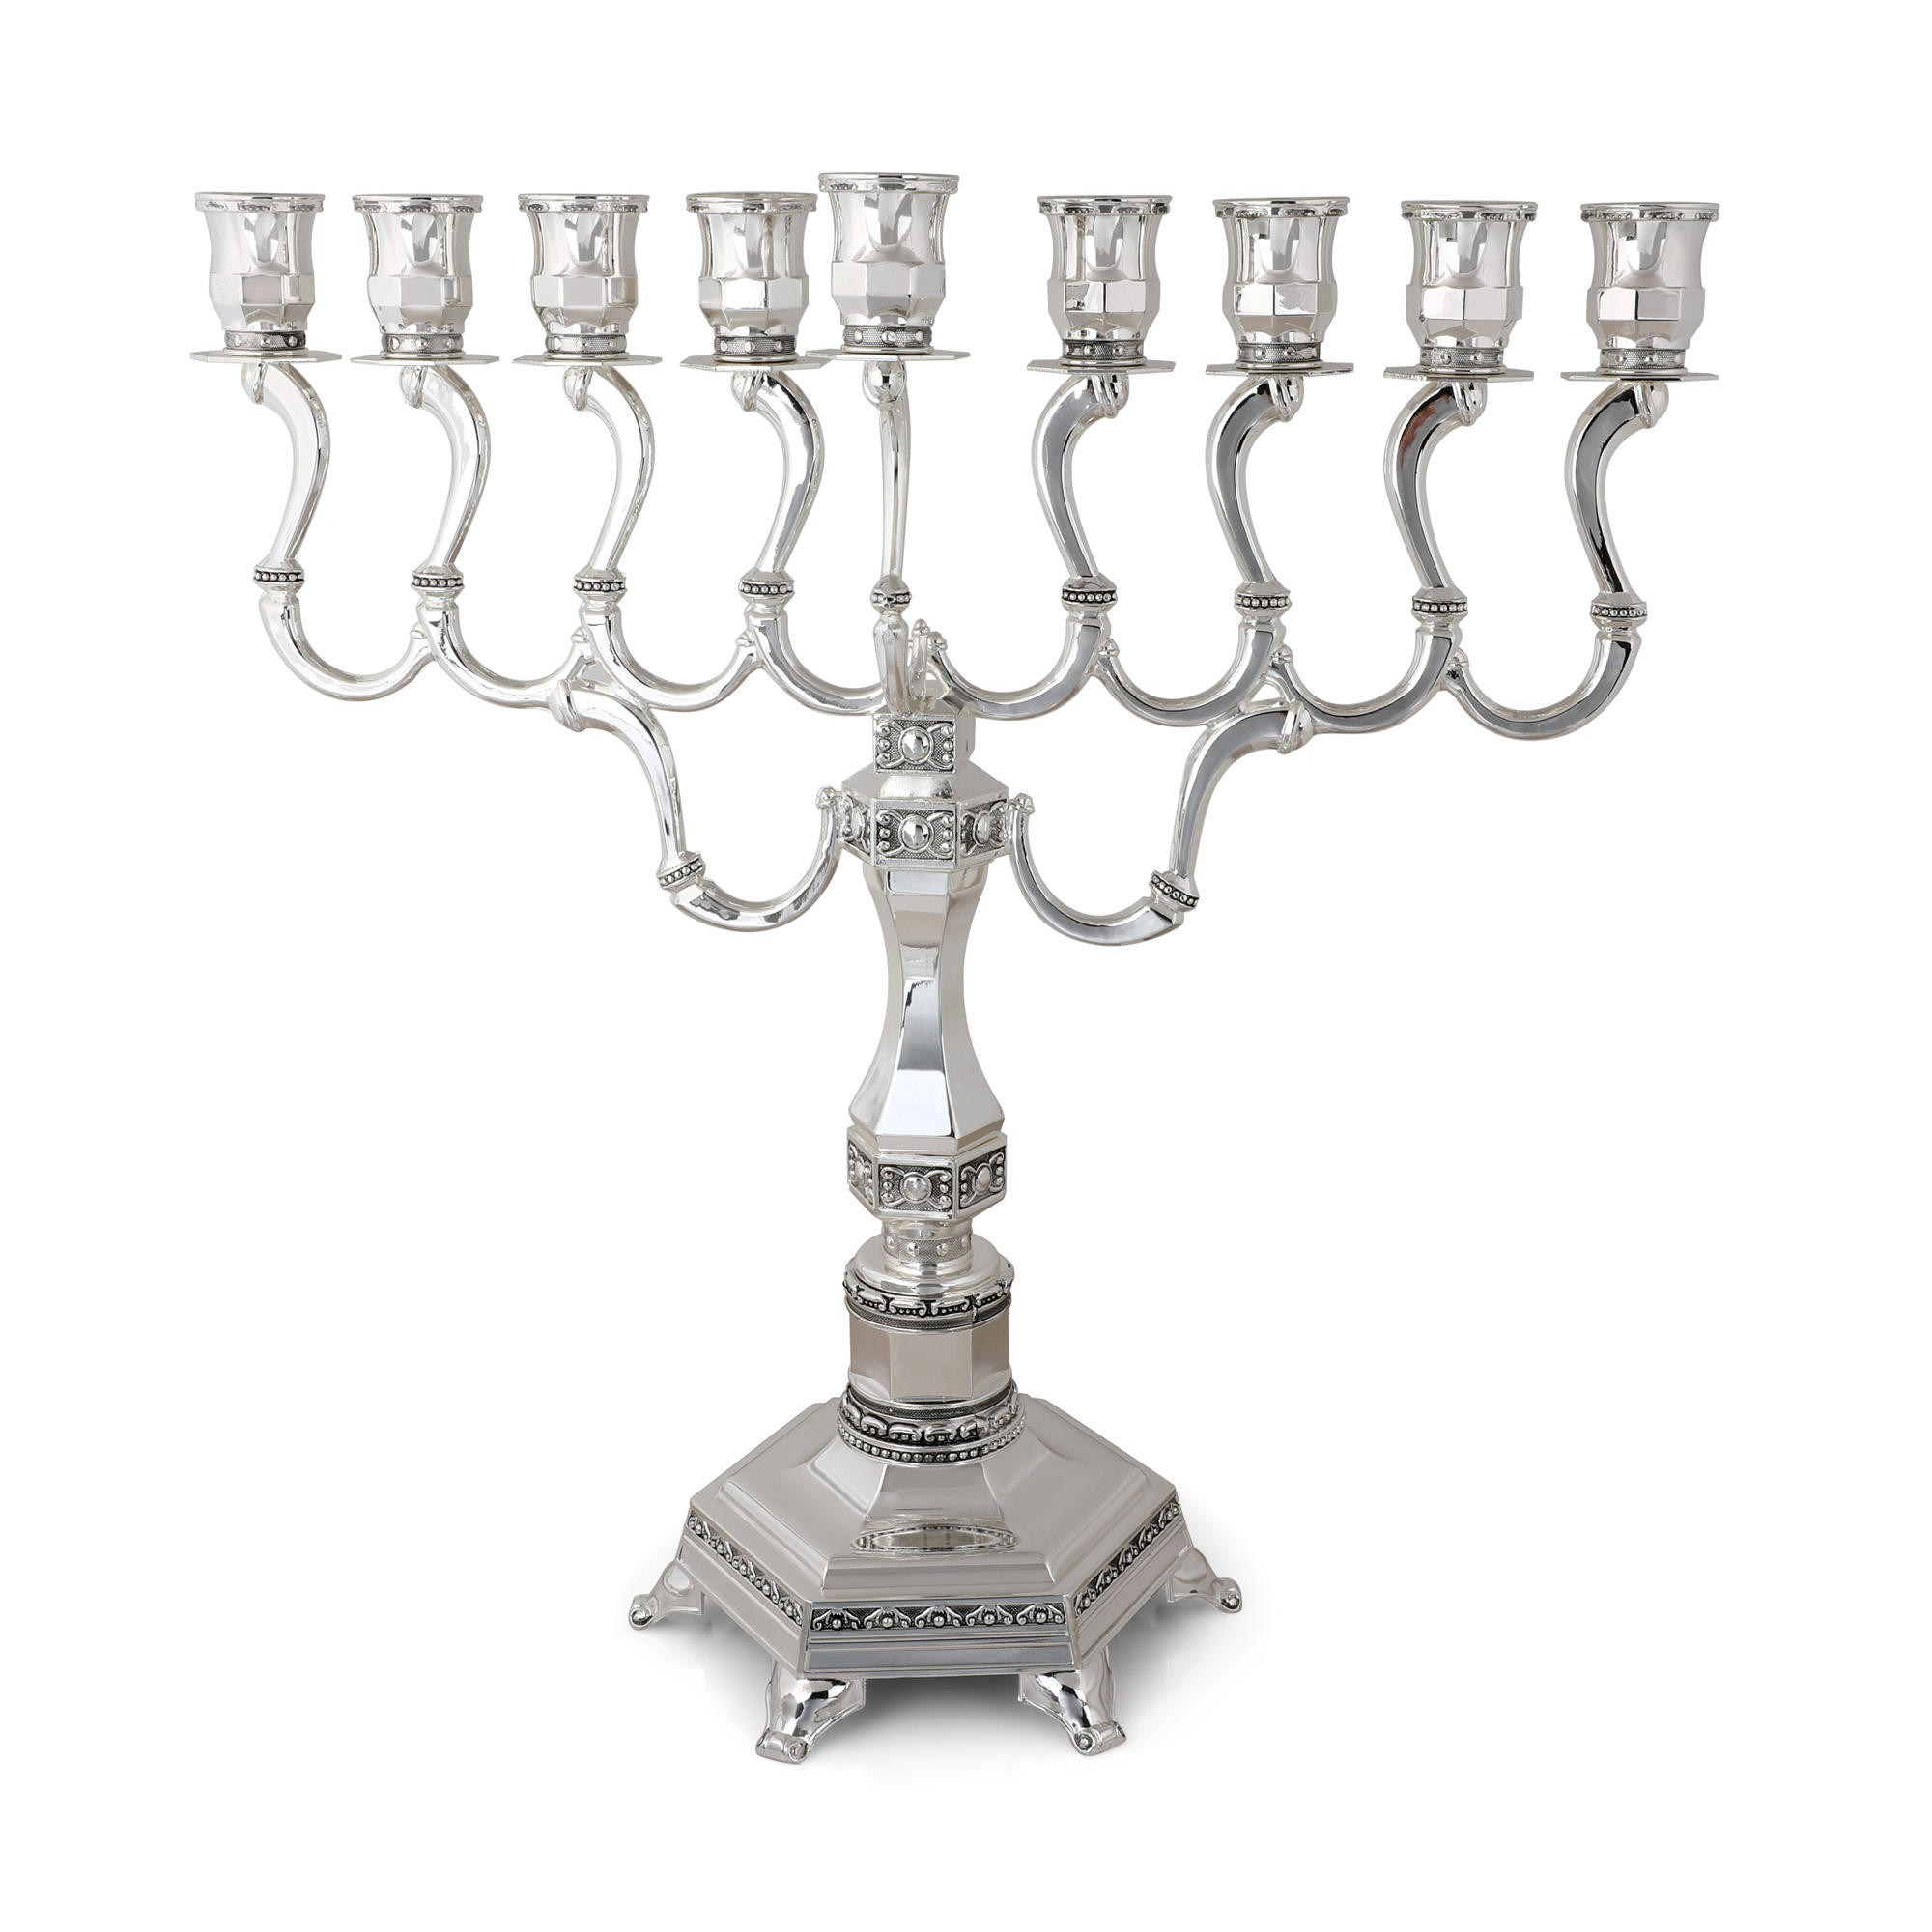 https://www.zionjudaica.com/Emanuel-Hammered-Havdalah-Set-Pomegranate-Branches.html